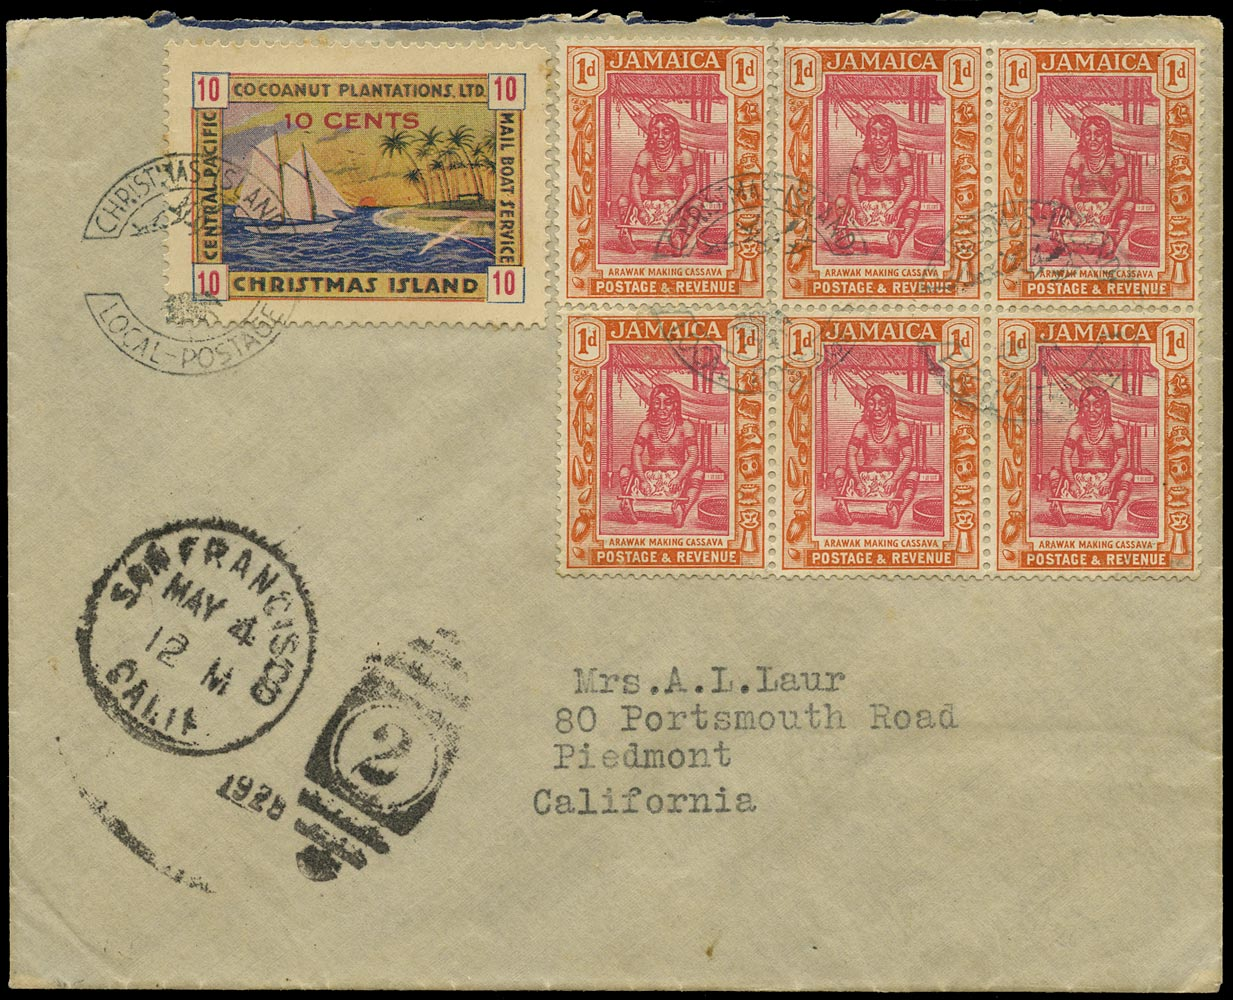 GILBERT & ELLICE IS 1935 Cover from Christmas Island to USA with 10c Yacht in combination with Jamaica